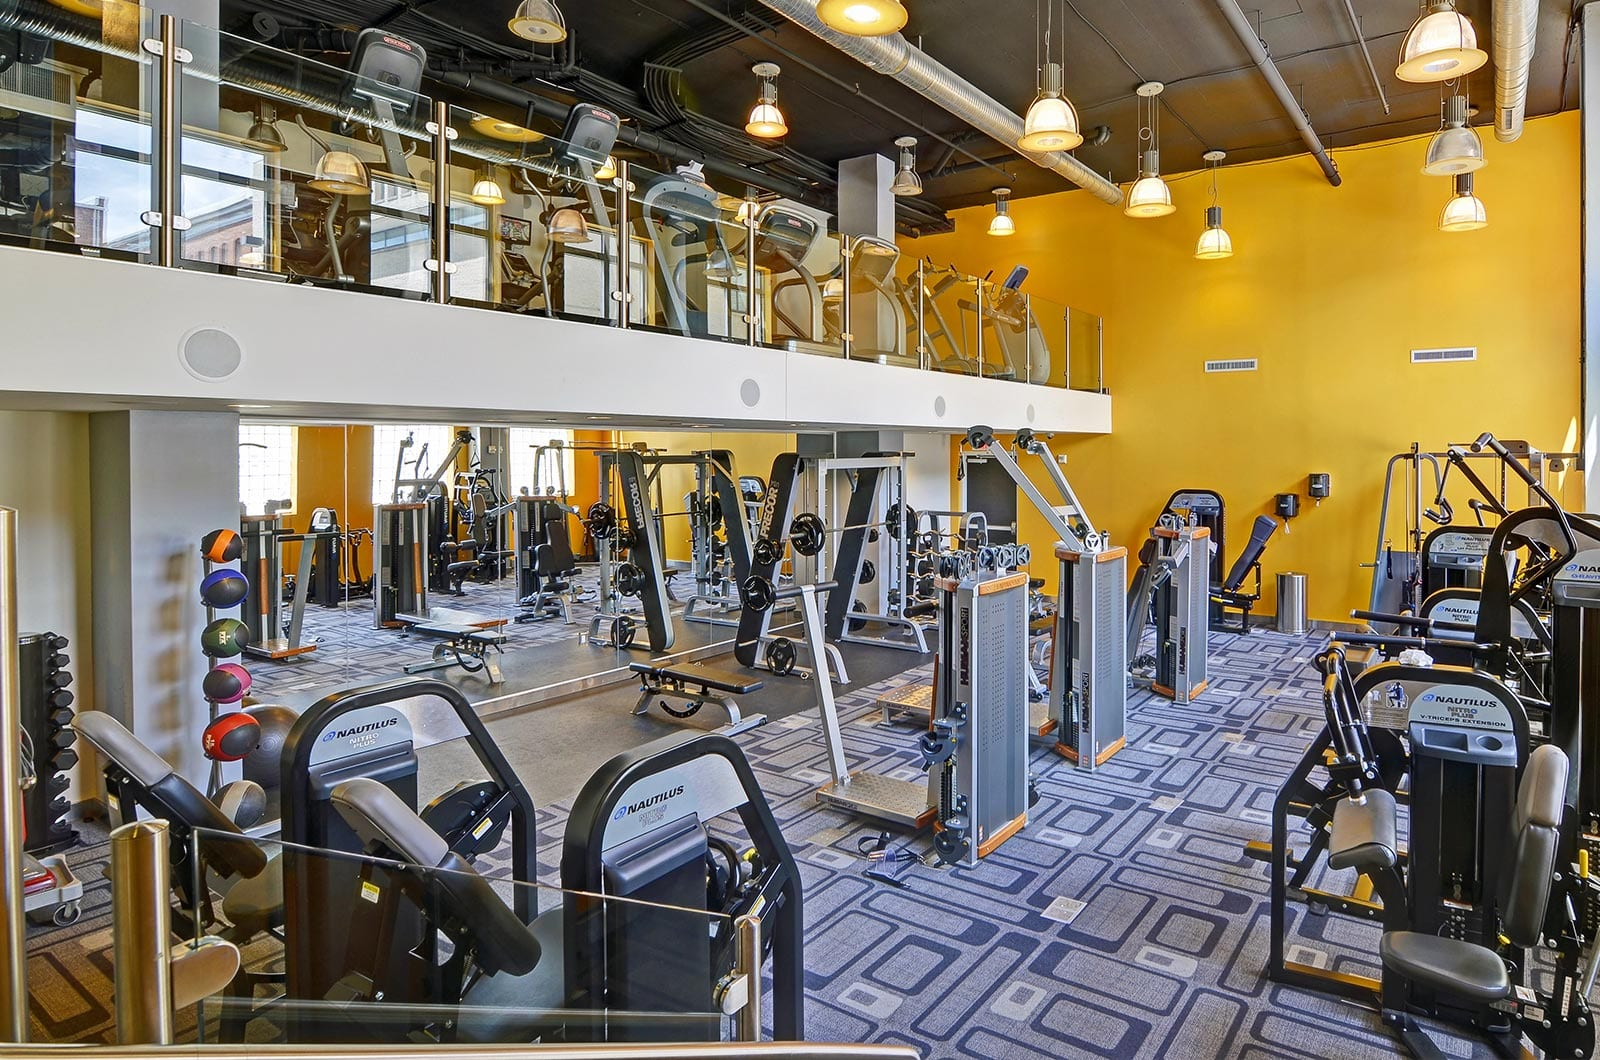 CBRE-Gym-Photography-Apartment-Photographer-Aerial-Drone-Photography-Services-360-Tours-for-Apartments-Apartment-Photography-Company-Apartment-Photography-Provider